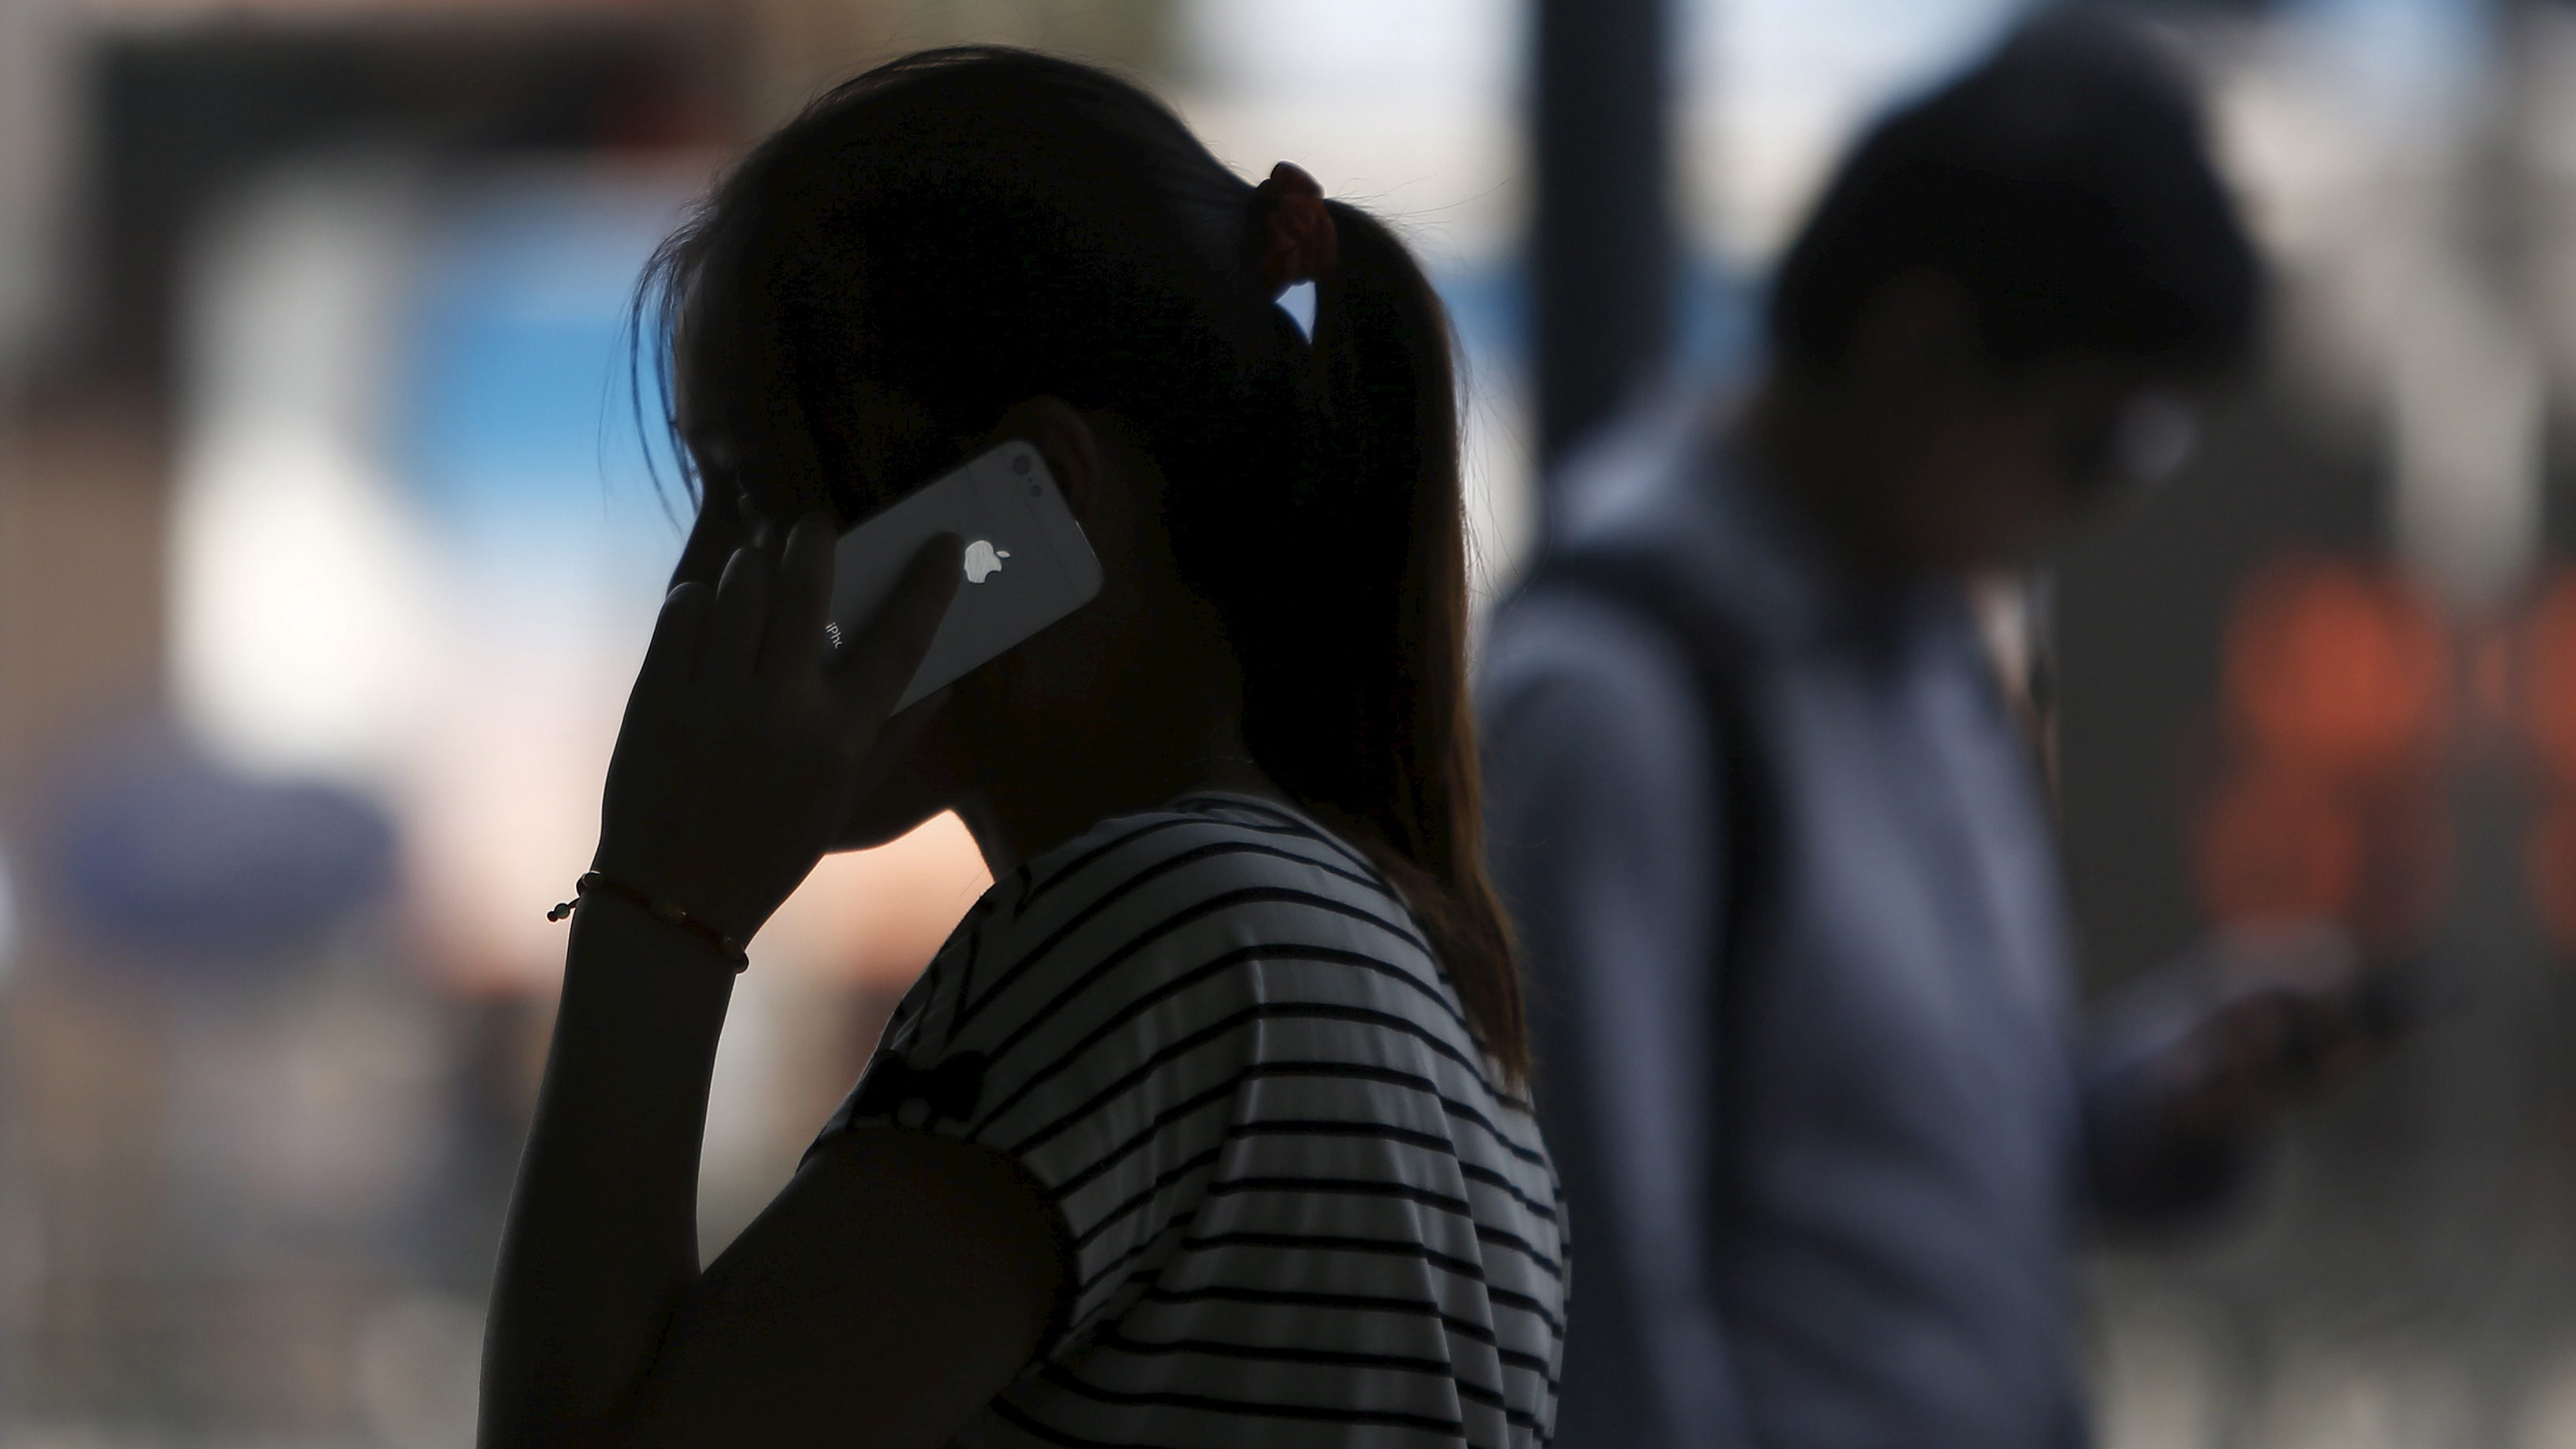 A woman speaks on her iPhone as she walks on a busy street in downtown Shanghai September 10, 2013. REUTERS/Aly Song/File Photo - RTX2BV9H